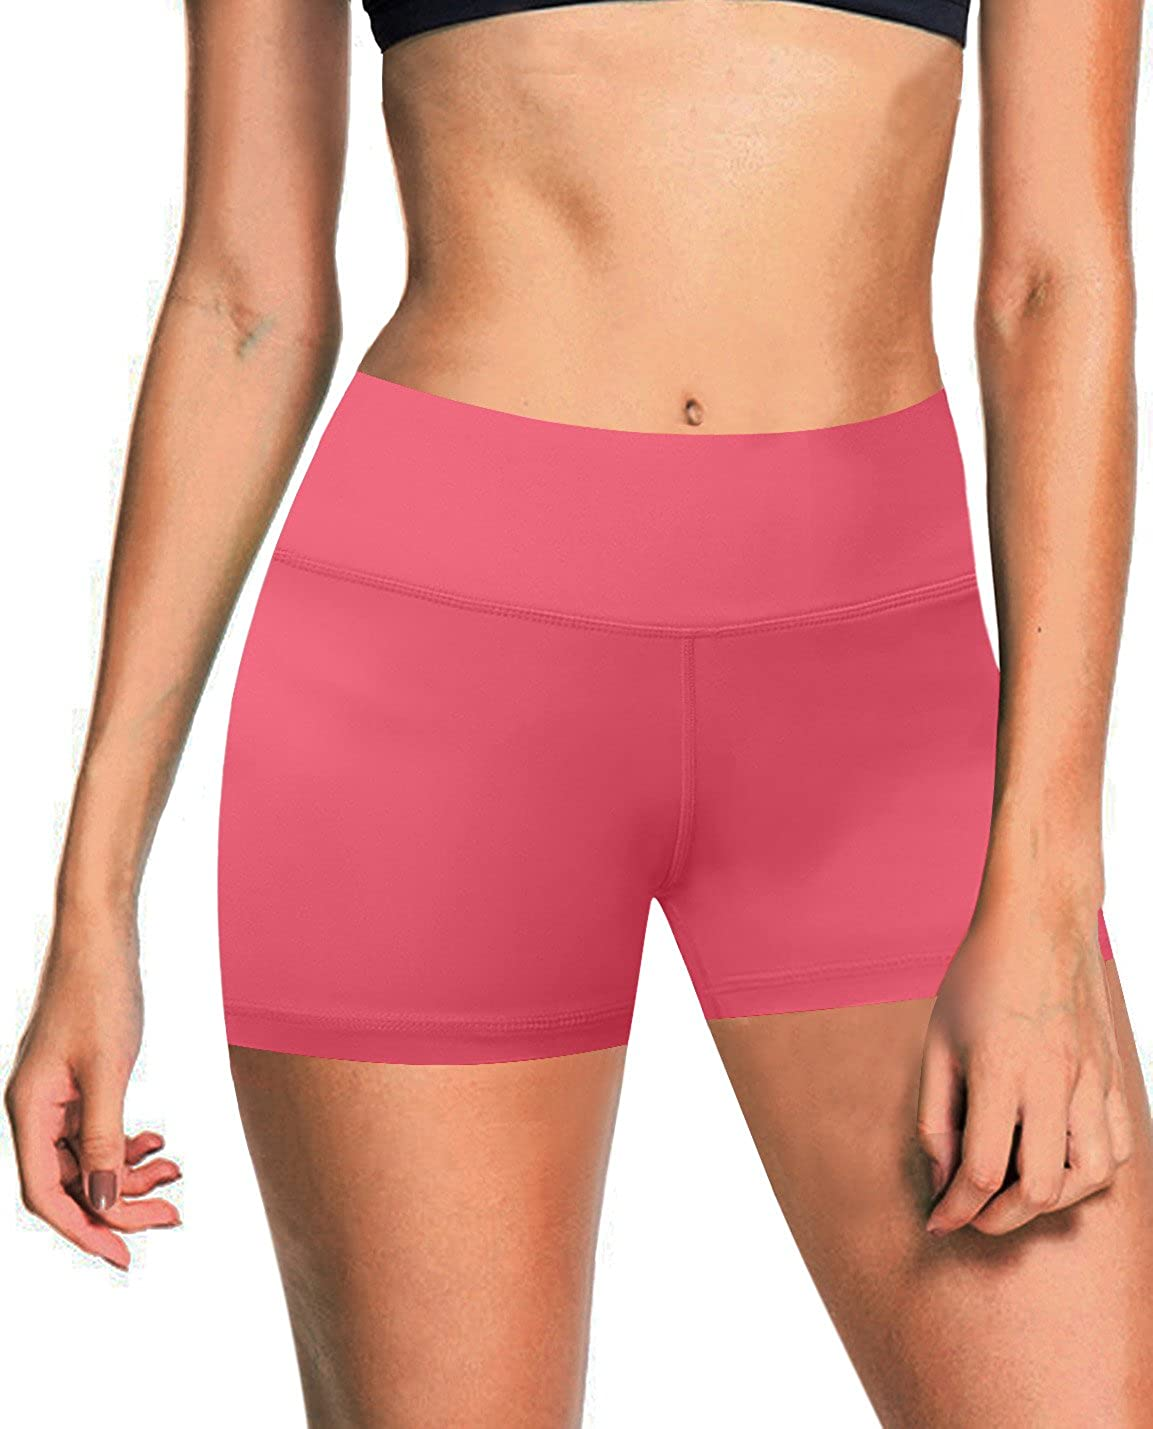 pinkcoral(4  Inner Pocket) BUBBLELIME 2.5   4  Inseam Out Pocket Yoga Shorts Running Shorts Active